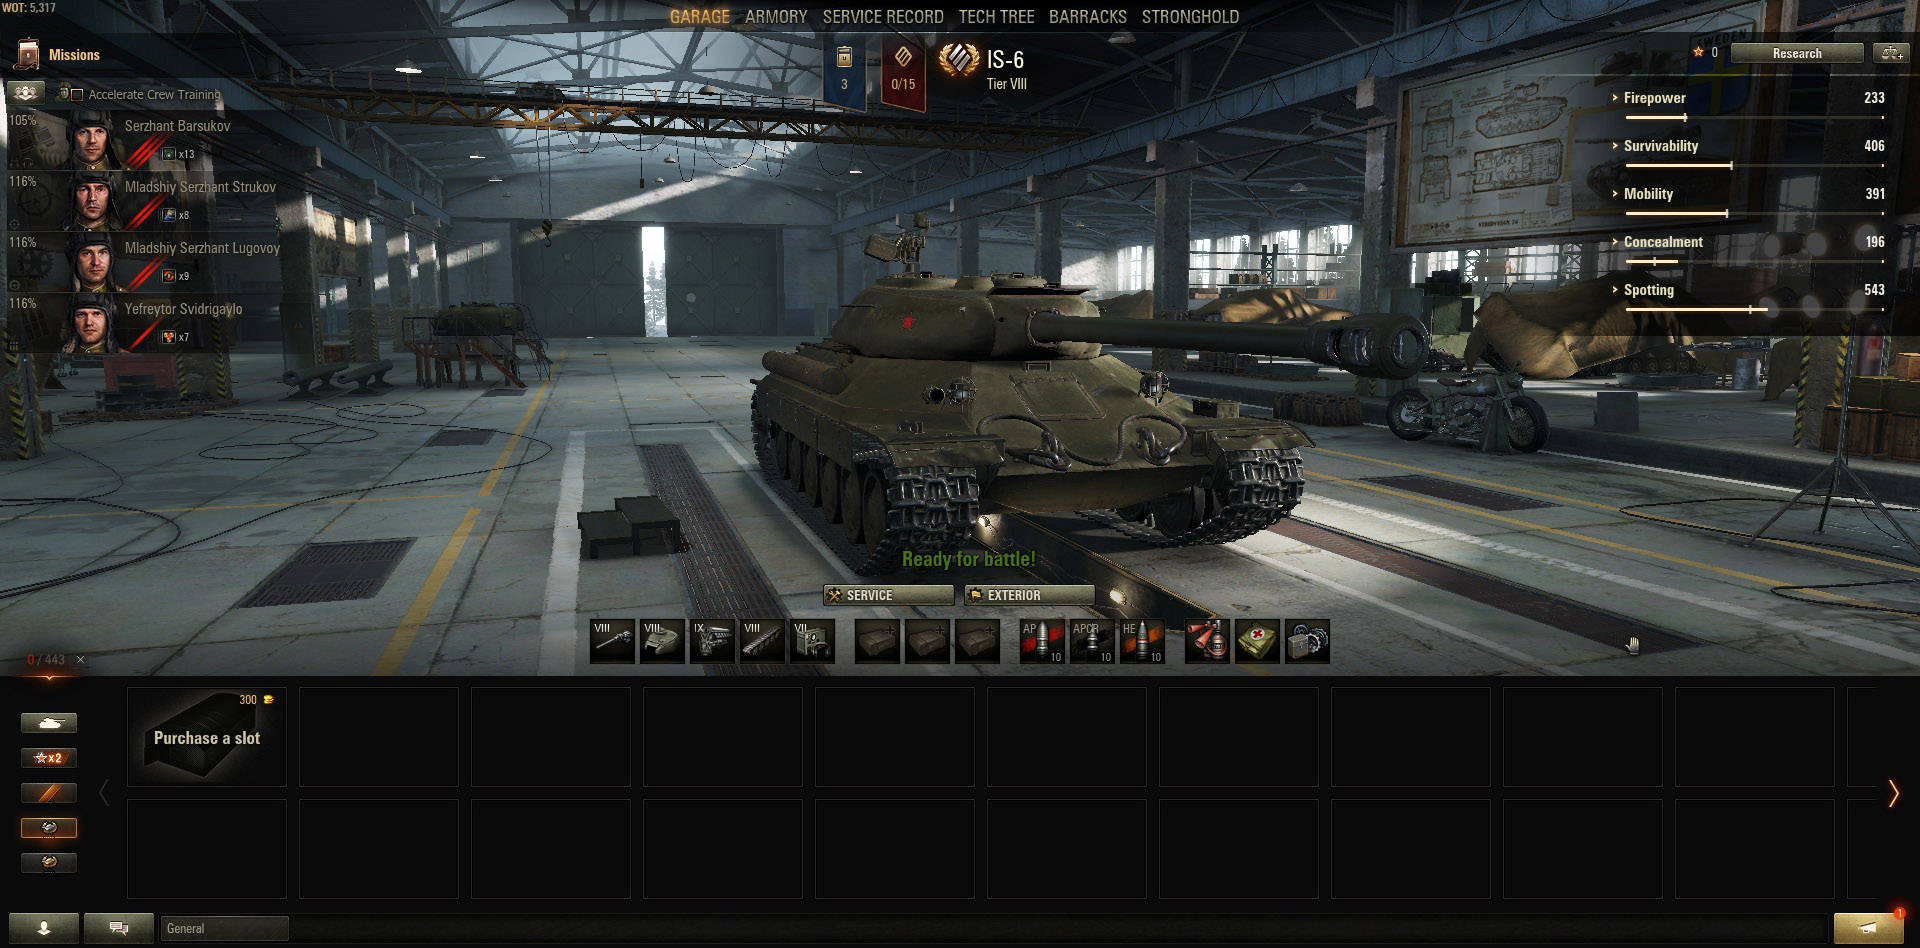 For everyone else, there's the IS-6, one of the most popular Premium tanks available. It boasts an incredible DPM and alpha damage, and high mobility!